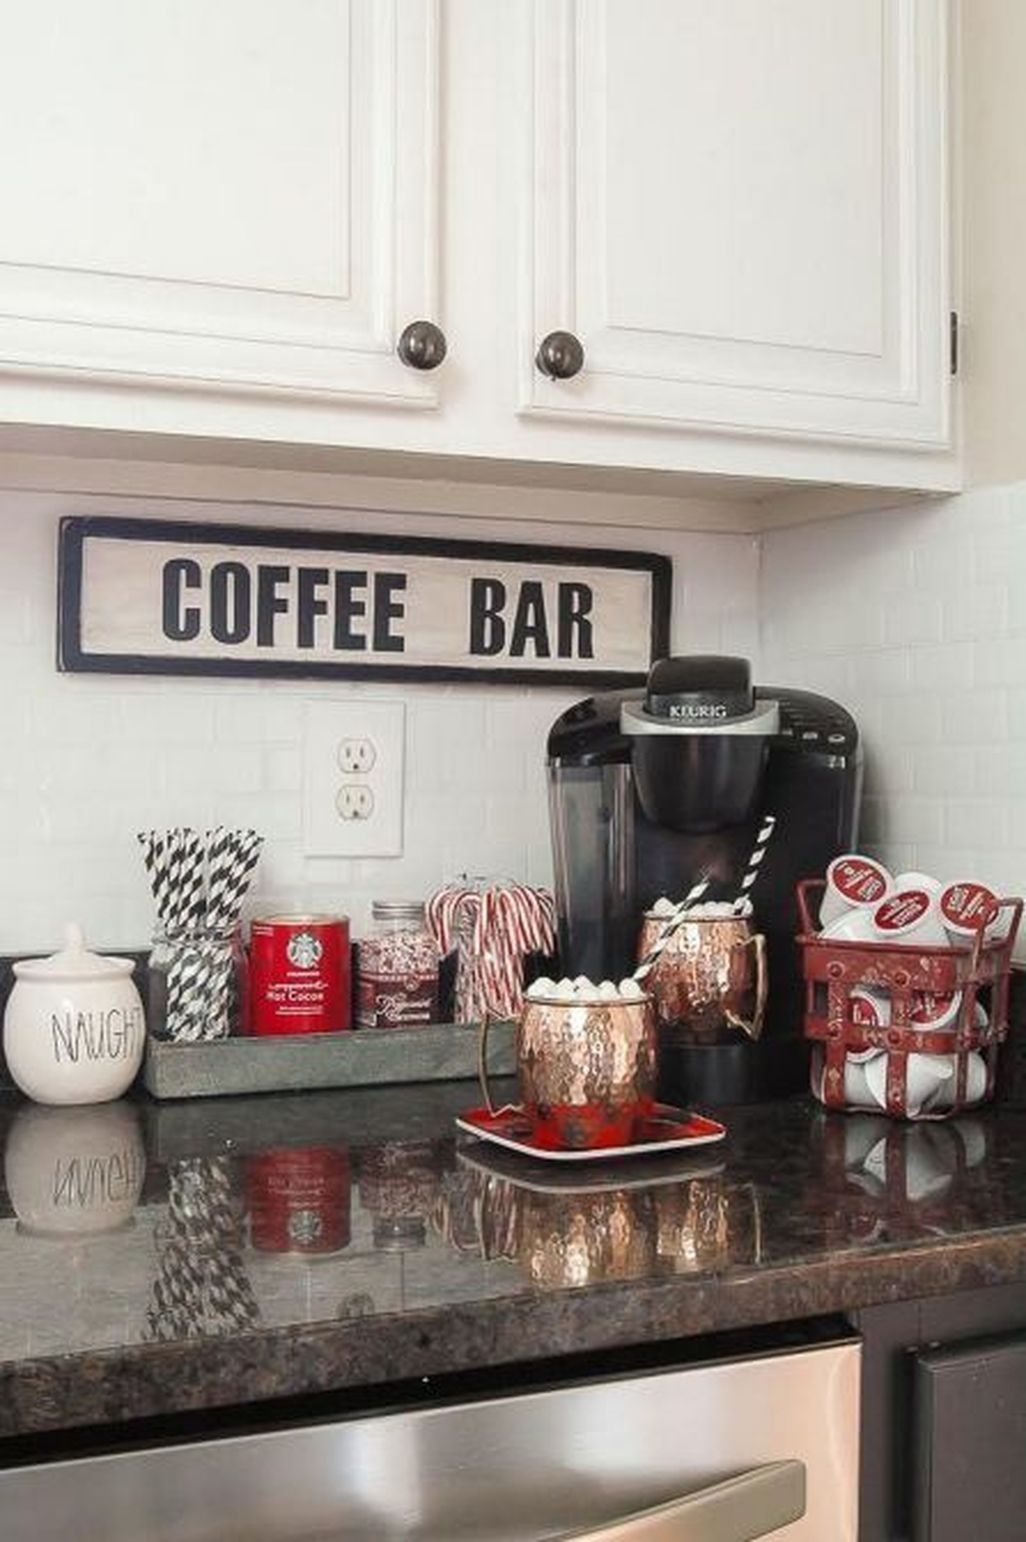 Cool 44 Beautiful College Apartment Decoration Ideas. More at https College Kitchen Ideas Pinterest on pinterest country kitchen, pinterest kitchen layout, pinterest kitchen tools, pinterest kitchen backsplash, pinterest kitchen sinks, pinterest kitchen decor, pinterest kitchen countertops, pinterest closets, pinterest kitchen cabinets, pinterest basement remodeling, pinterest recipes, pinterest kitchen inspiration, pinterest kitchen decorating accessories, pinterest kitchen concepts, pinterest kitchen remodel, pinterest mini kitchens, pinterest kitchen organization, pinterest kitchen patterns, pinterest home, pinterest pink kitchens,